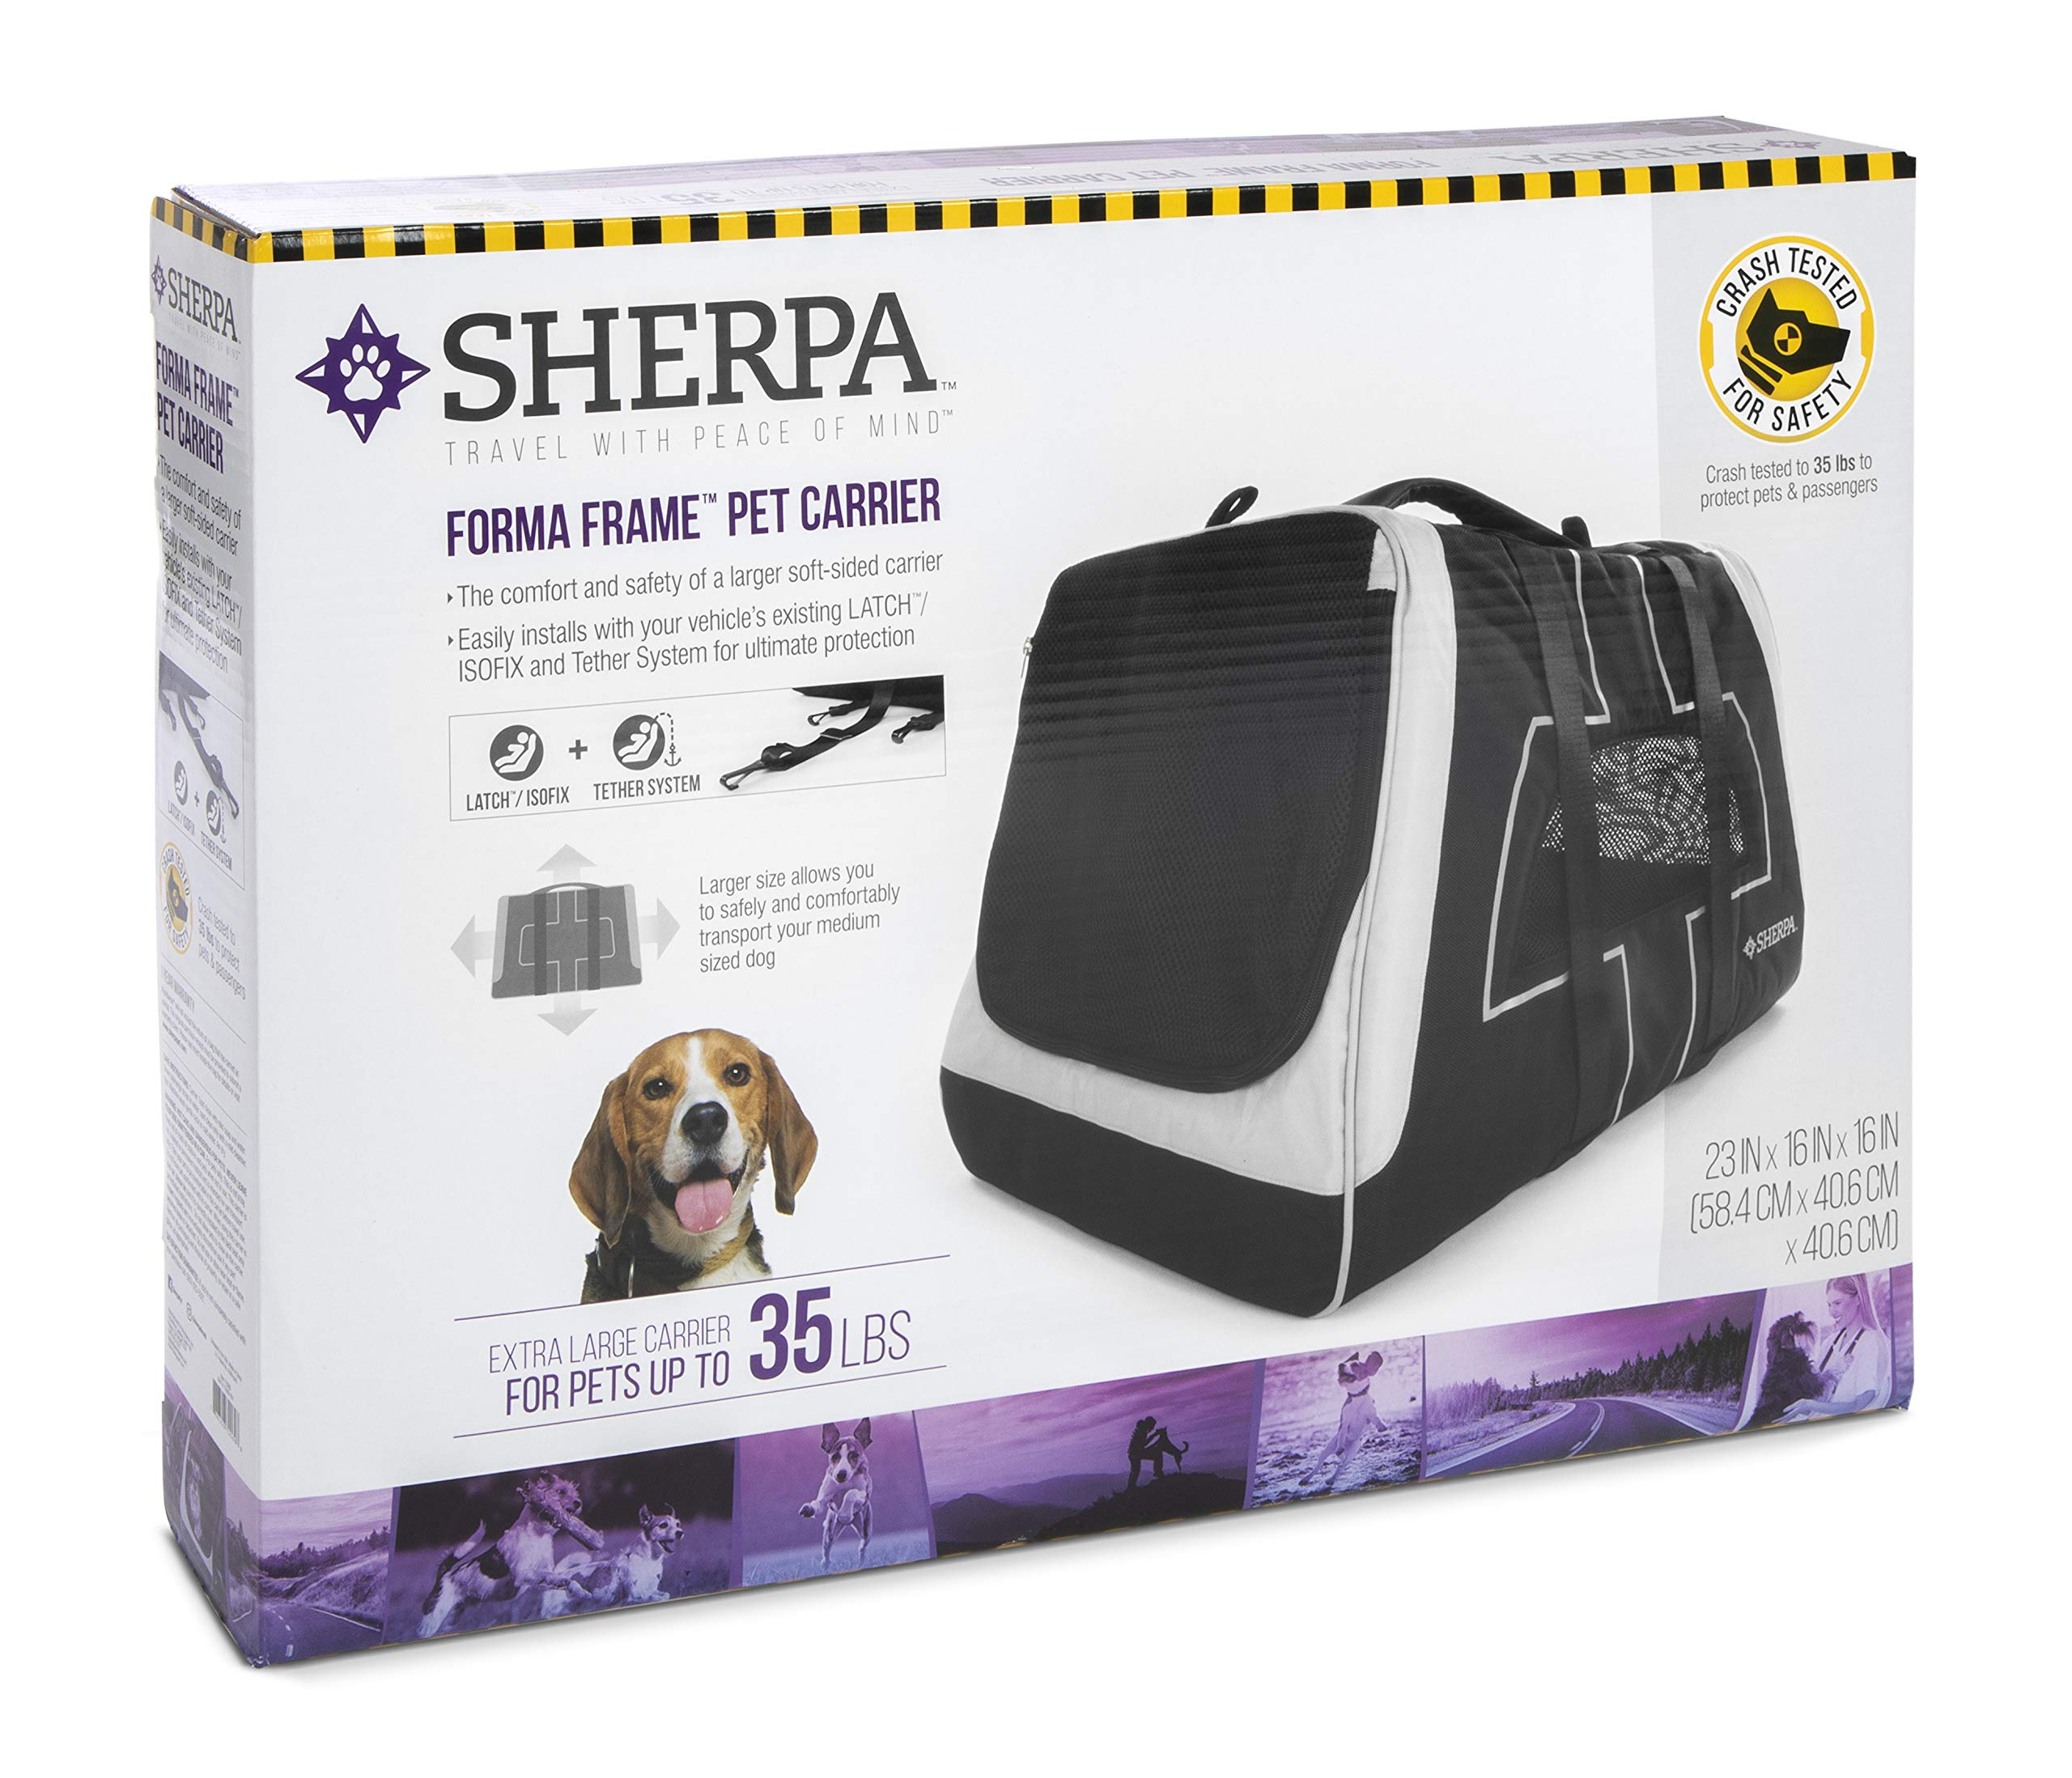 Sherpa Forma Frame Airline Approved Crash Tested Pet Carrier, Black, X-Large by Sherpa